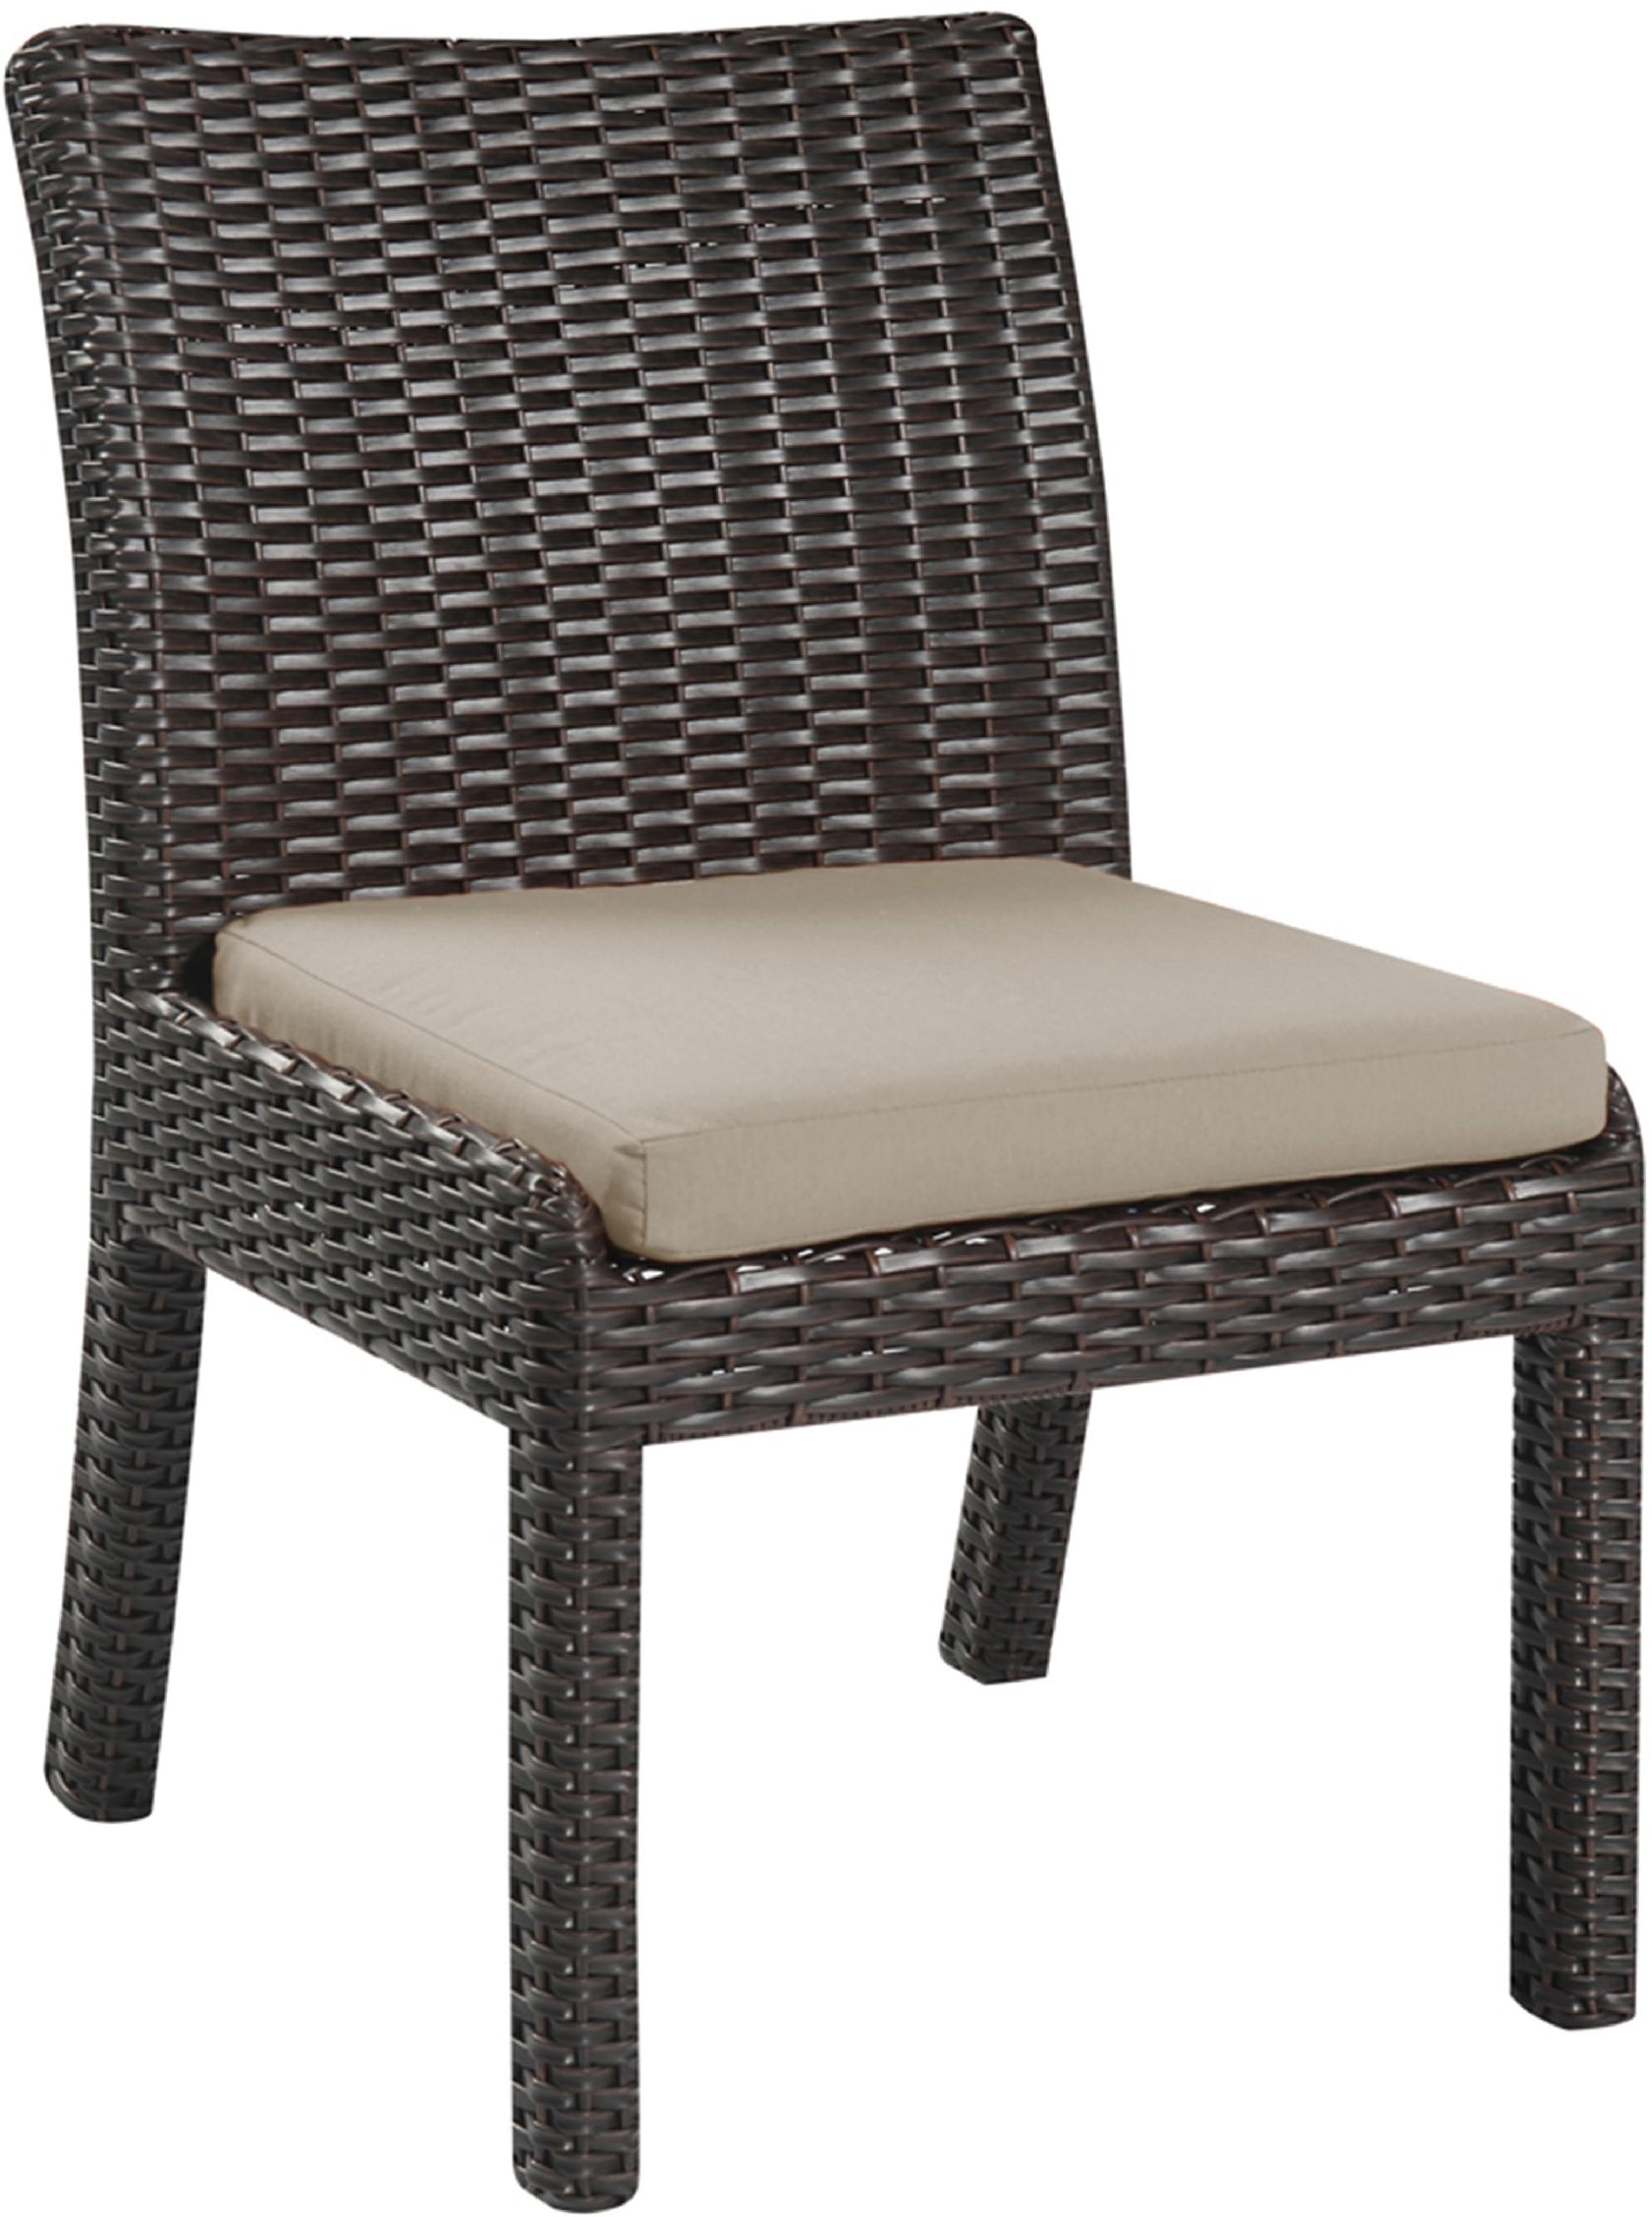 emerald home furnishings outdoor patio armless dining chair